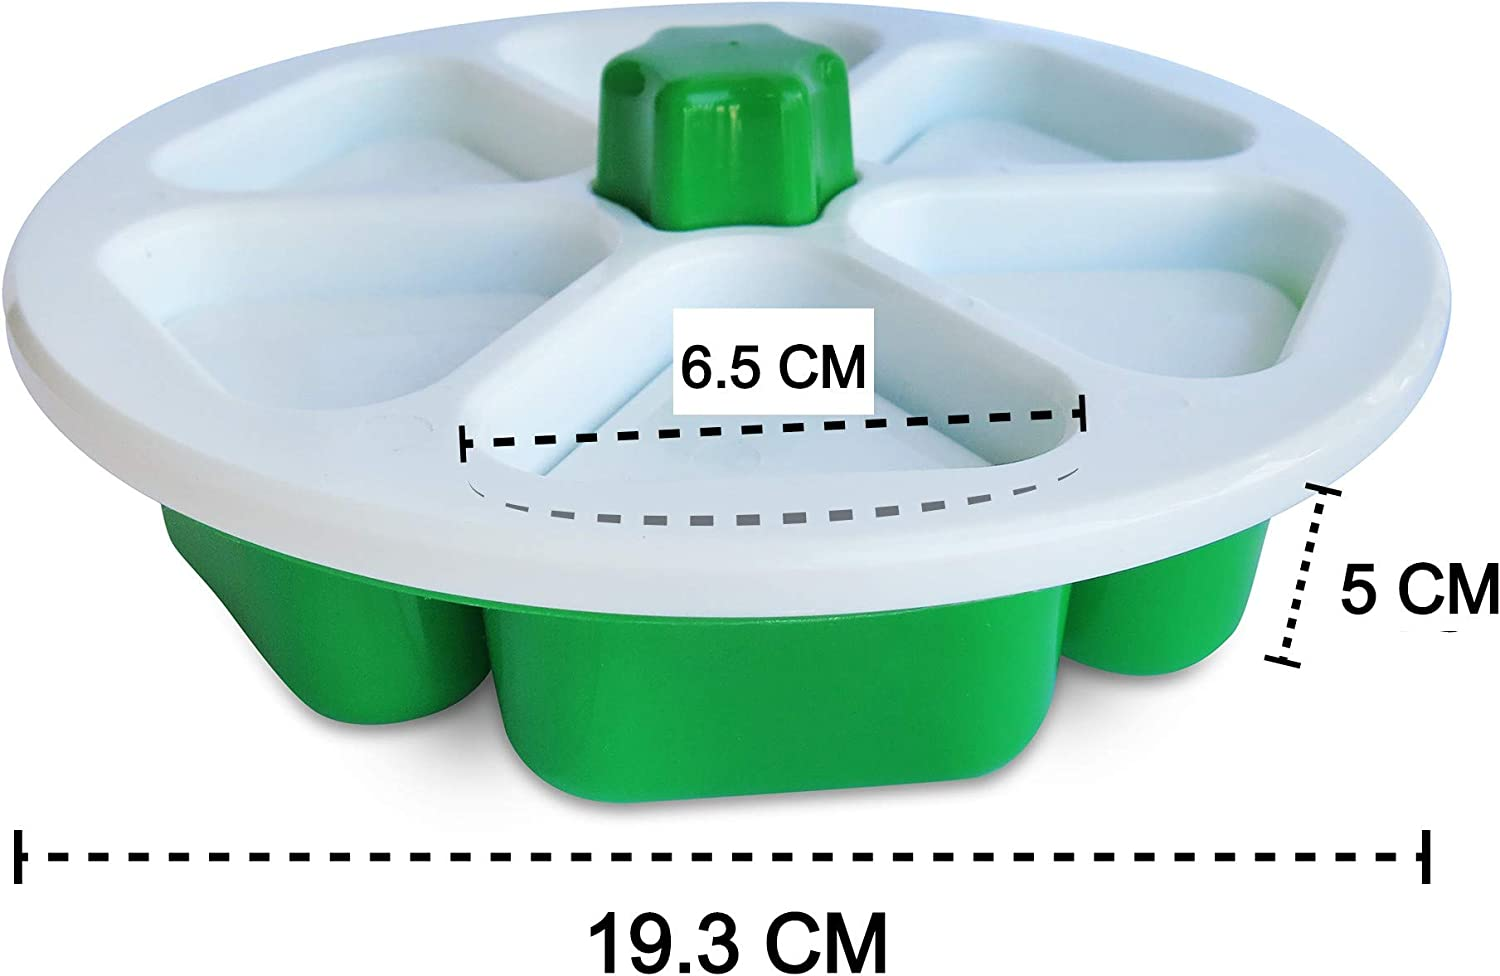 Set of 2 Triangle Sushi Mold Onigiri Maker Able to Make Up to 6 Triangle Sushi at The Same Time Quickly and Easily